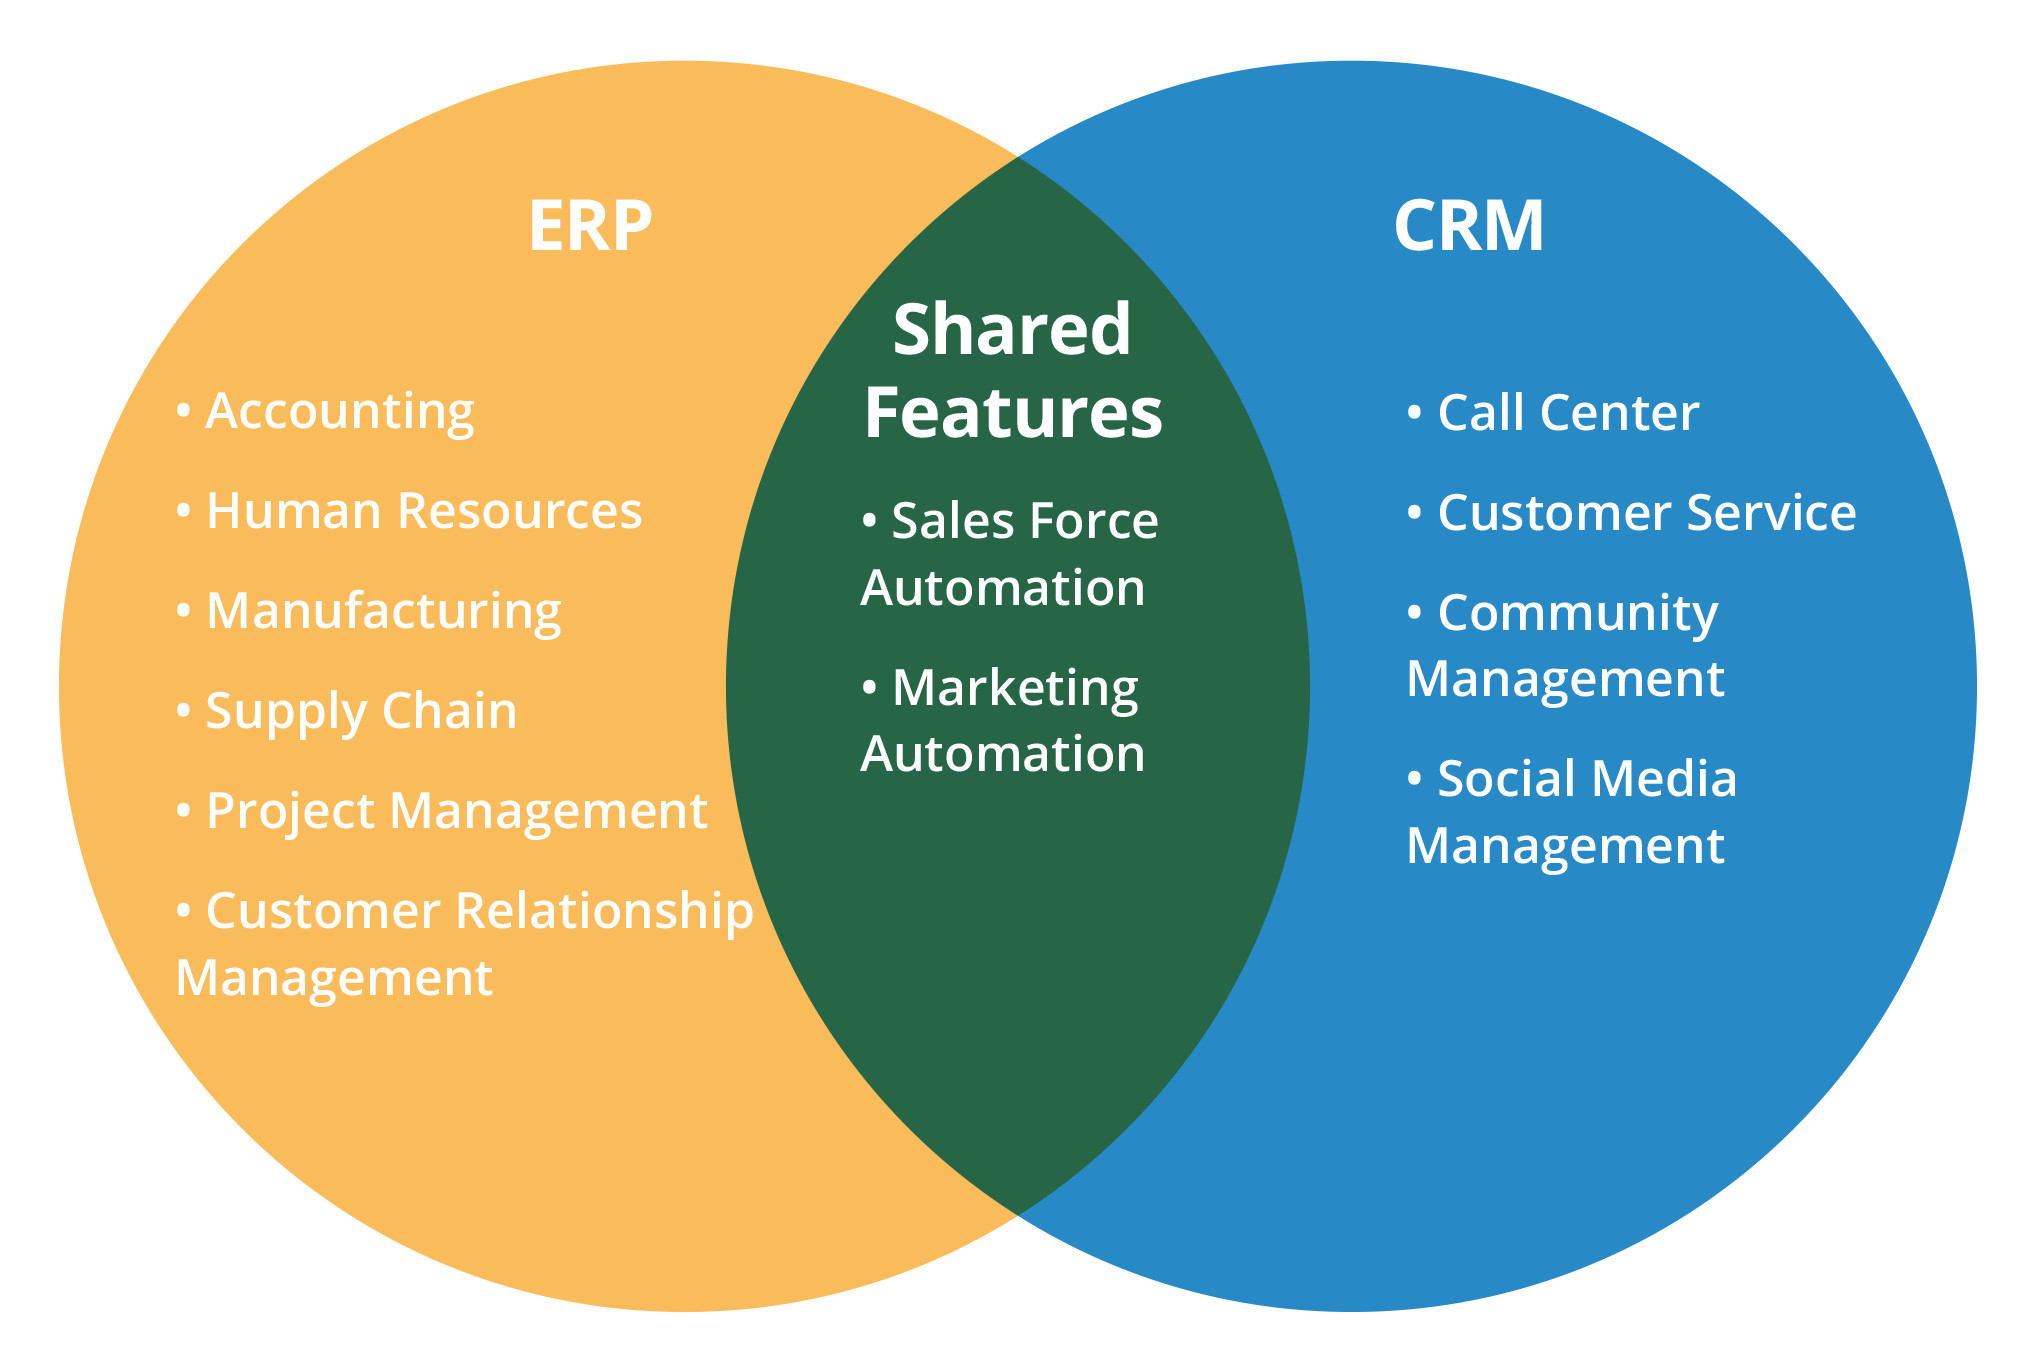 Which Is The Best For 2016 Erp Or Crm Crm Score